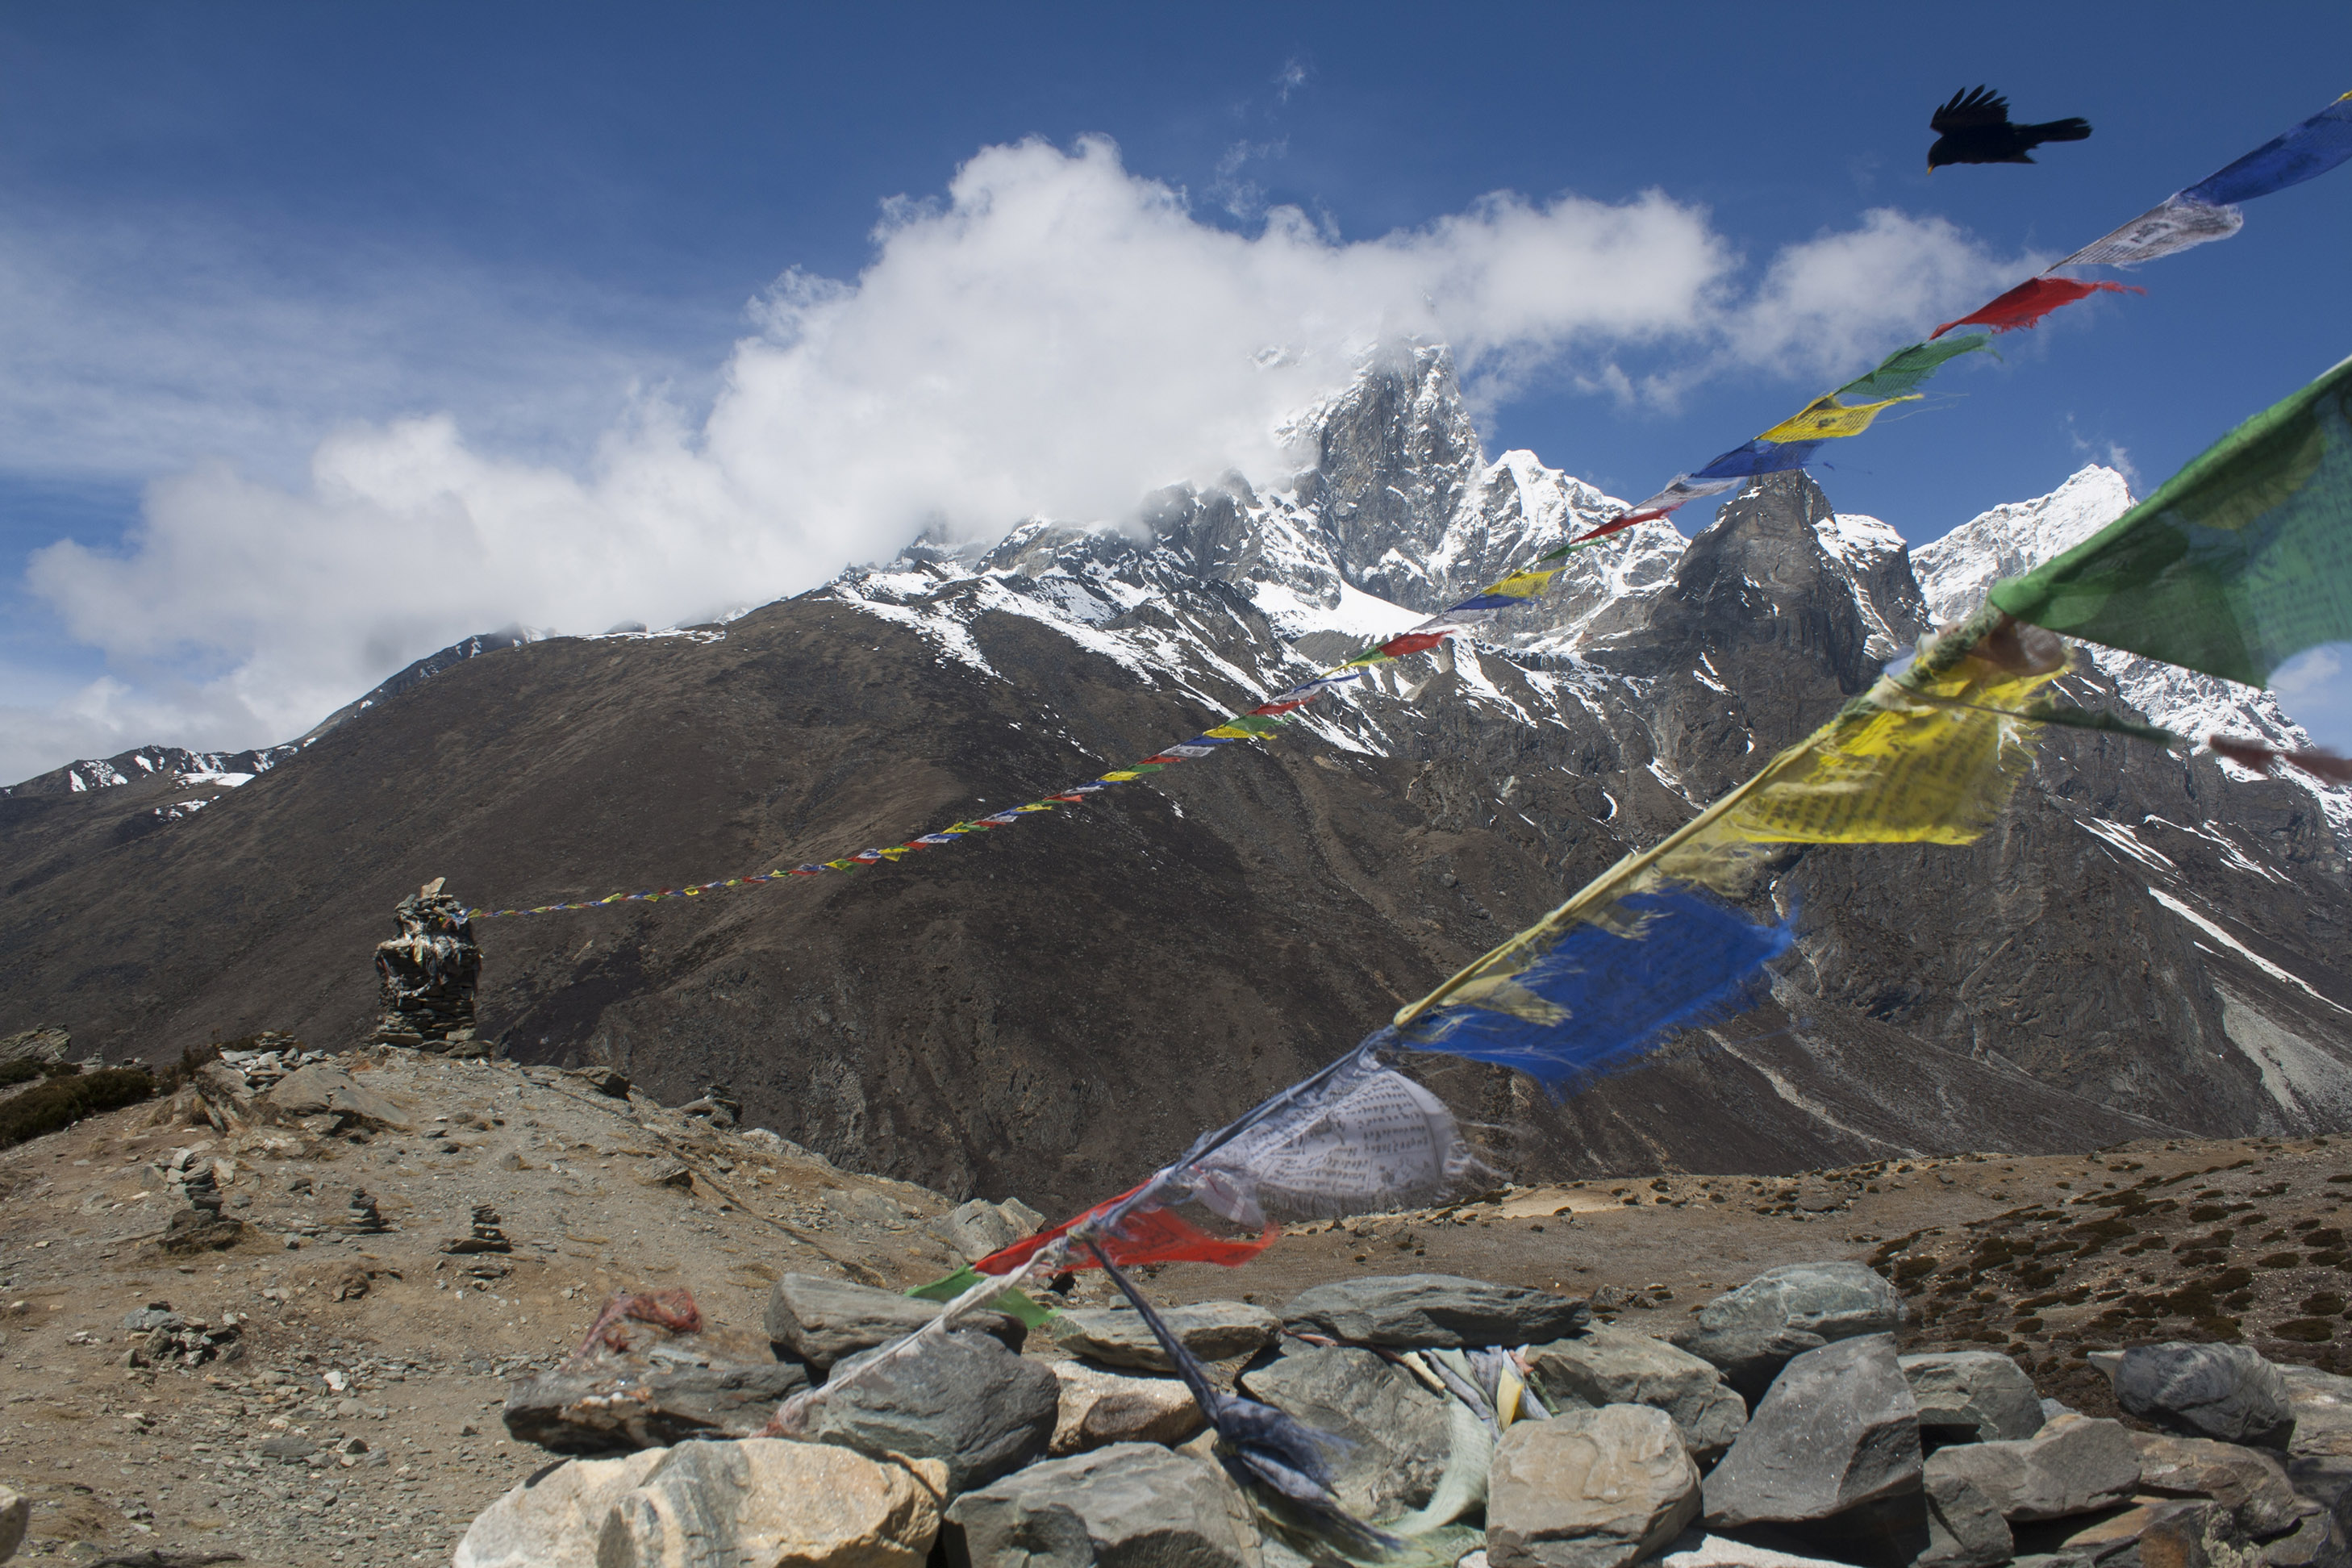 Bird_and_Prayer_Flags_in_Front_of_Mt_Ama_Dablam,_Sagarmatha_National_Park,_Nepal